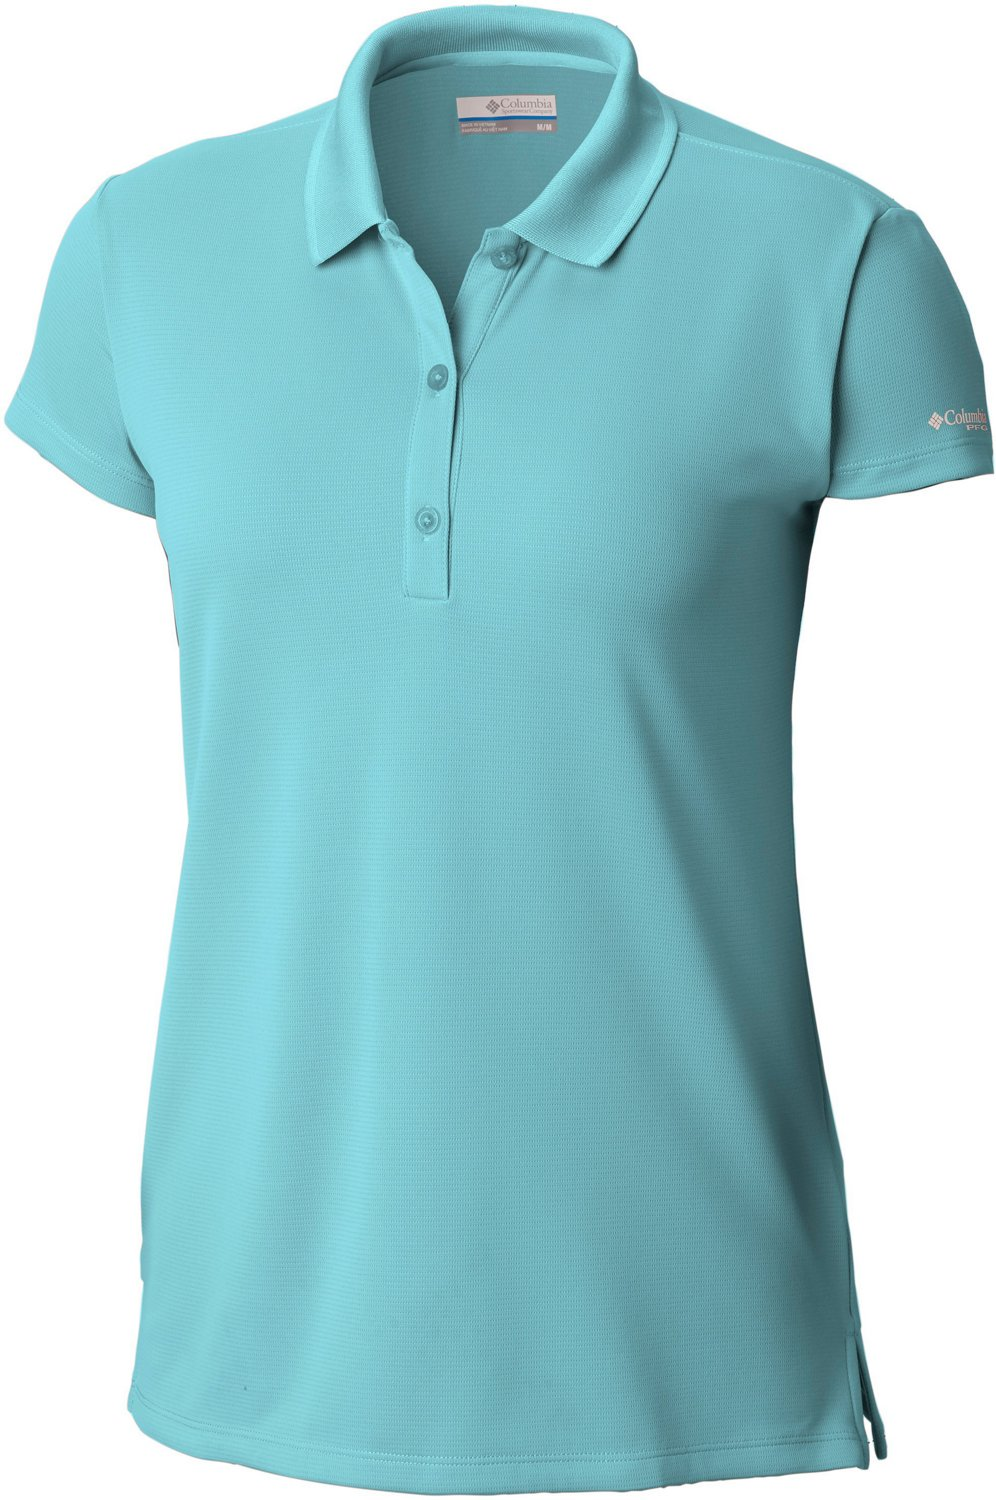 acf0926bcc1 Display product reviews for Columbia Sportswear Women s Innisfree Short  Sleeve Polo